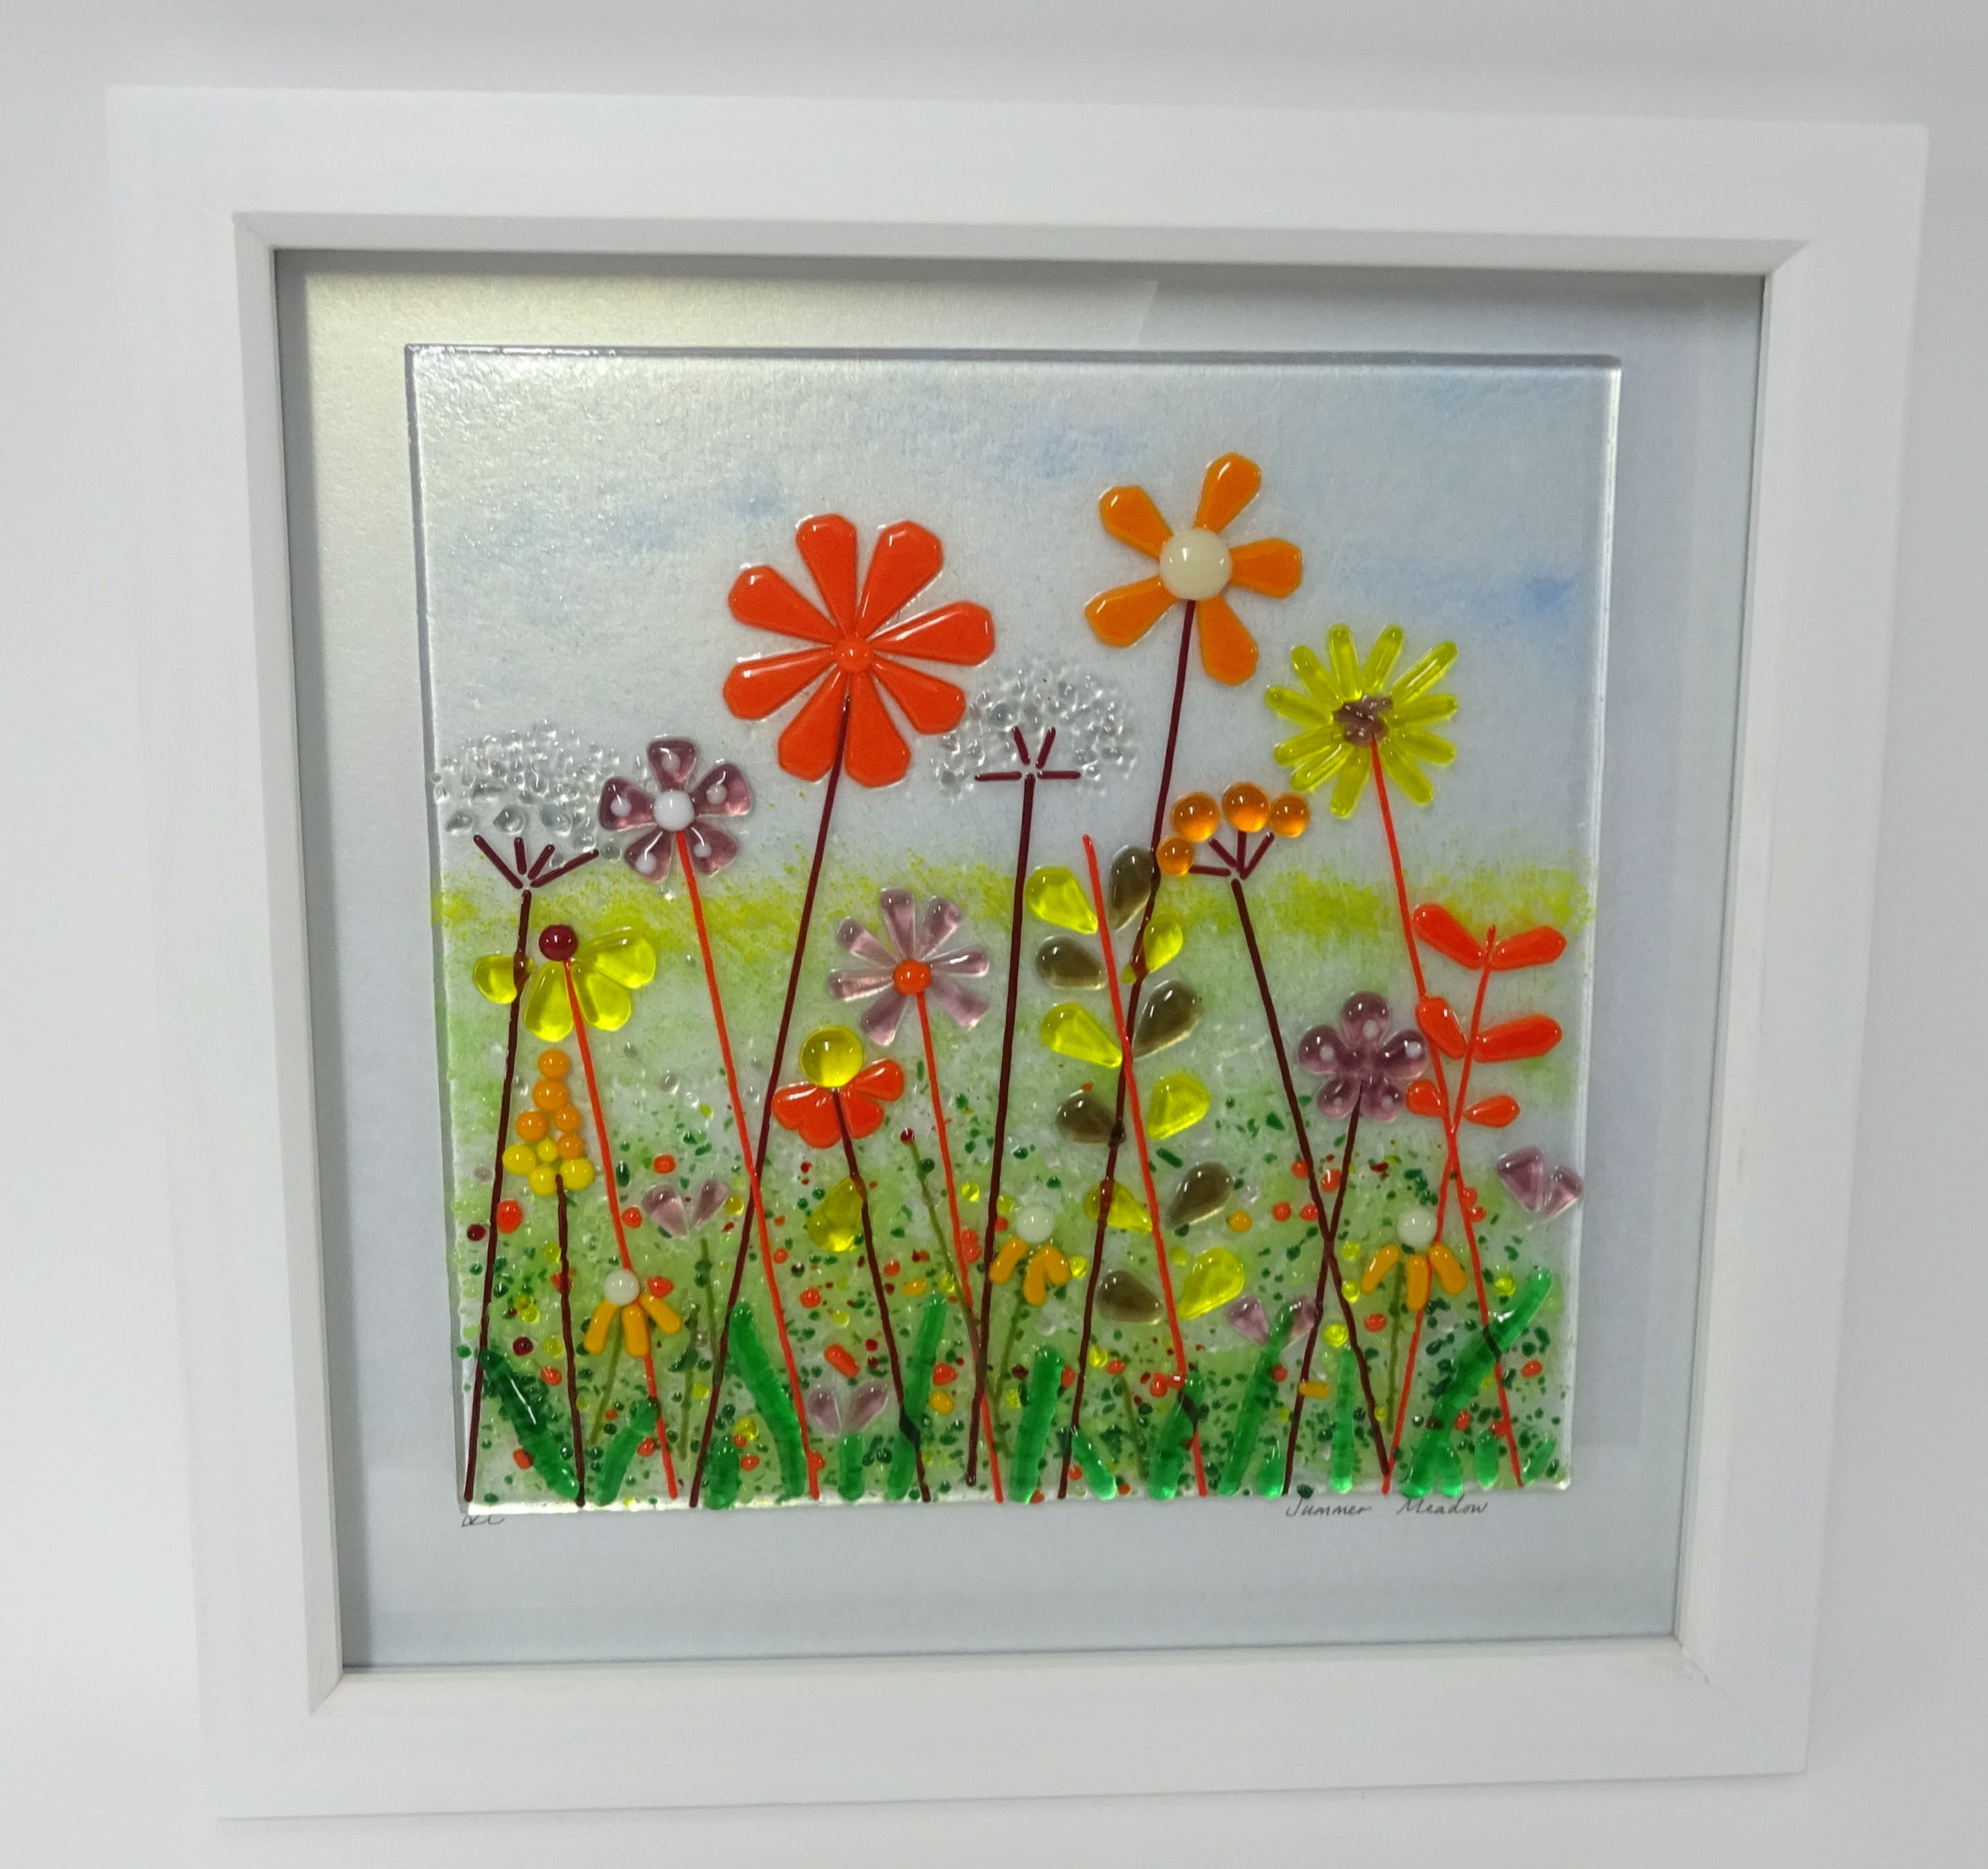 Lot 008 - Lou from Lou C fused glass, original glass work, titled 'Summer Meadow', frame size 30cm x 30cm,